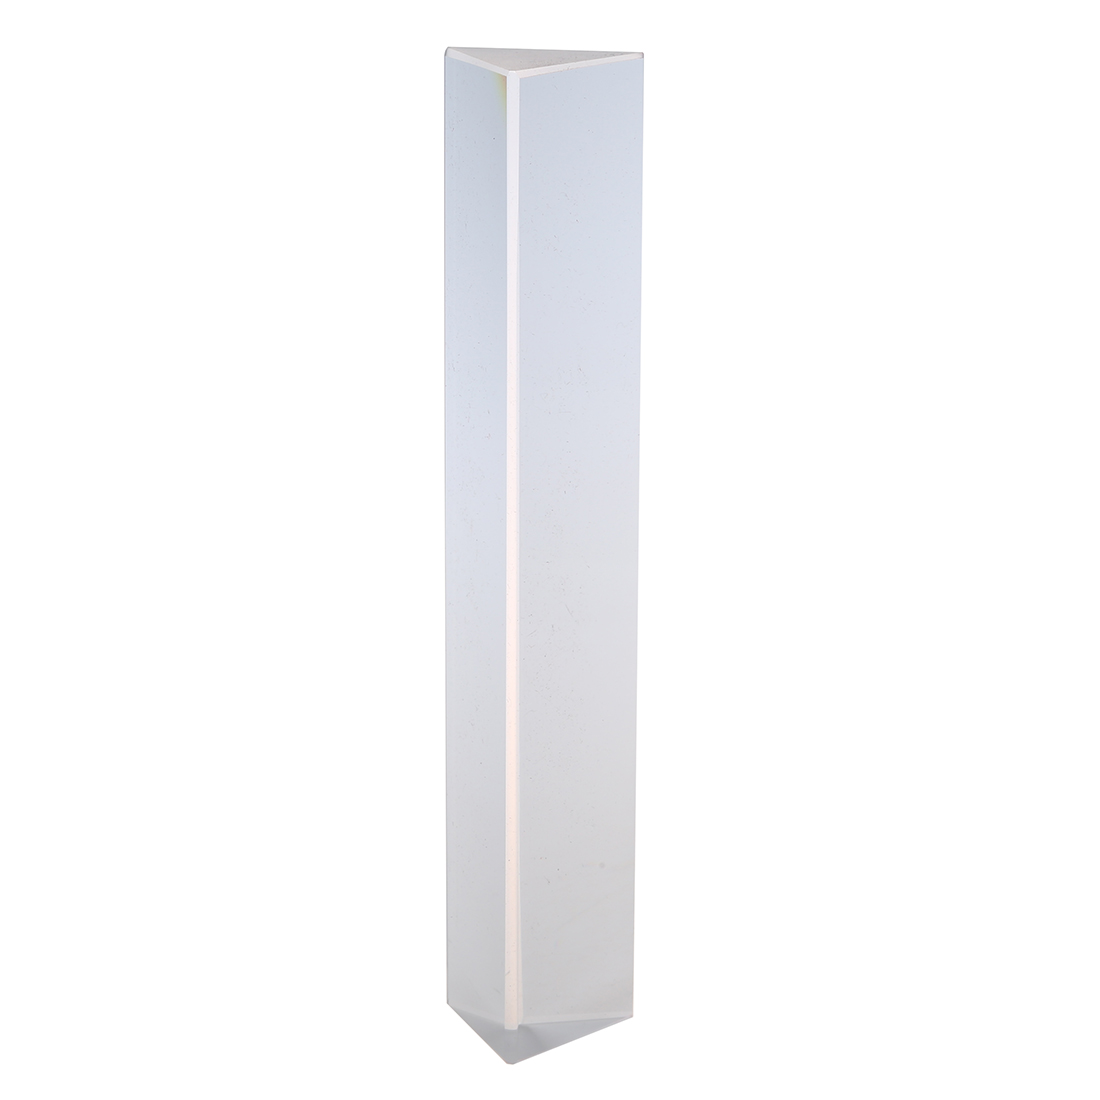 6 Inch Optical Glass Triple Triangular Prism Physics Teaching Light Spectrum 15 In Prisms From